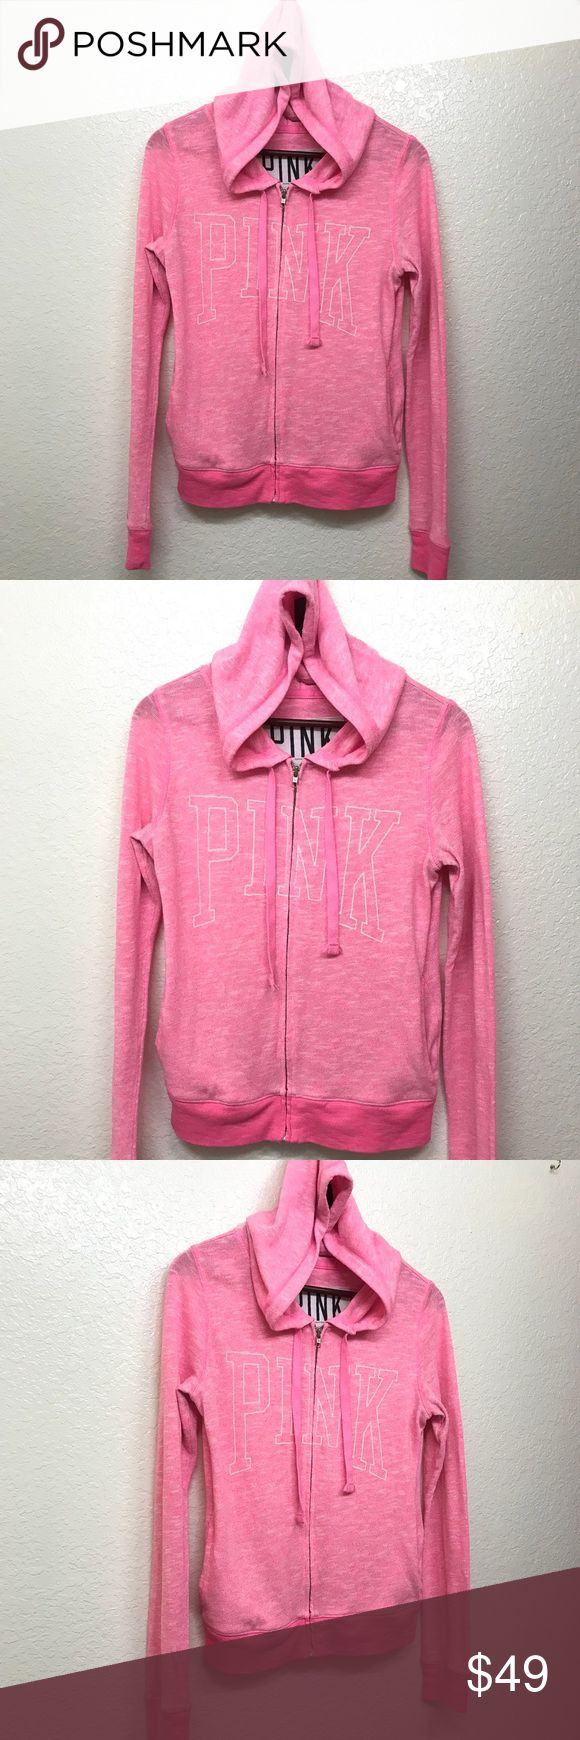 "Victoria Secret Pink Zip Up Hoodie Size XS Pink Victoria Secret Pink Zip Up Hoodie Size XS Pink Excellent Condition  Measurements are Approximate  Bust: 19"" Length: 24"" PINK Victoria's Secret Sweaters"